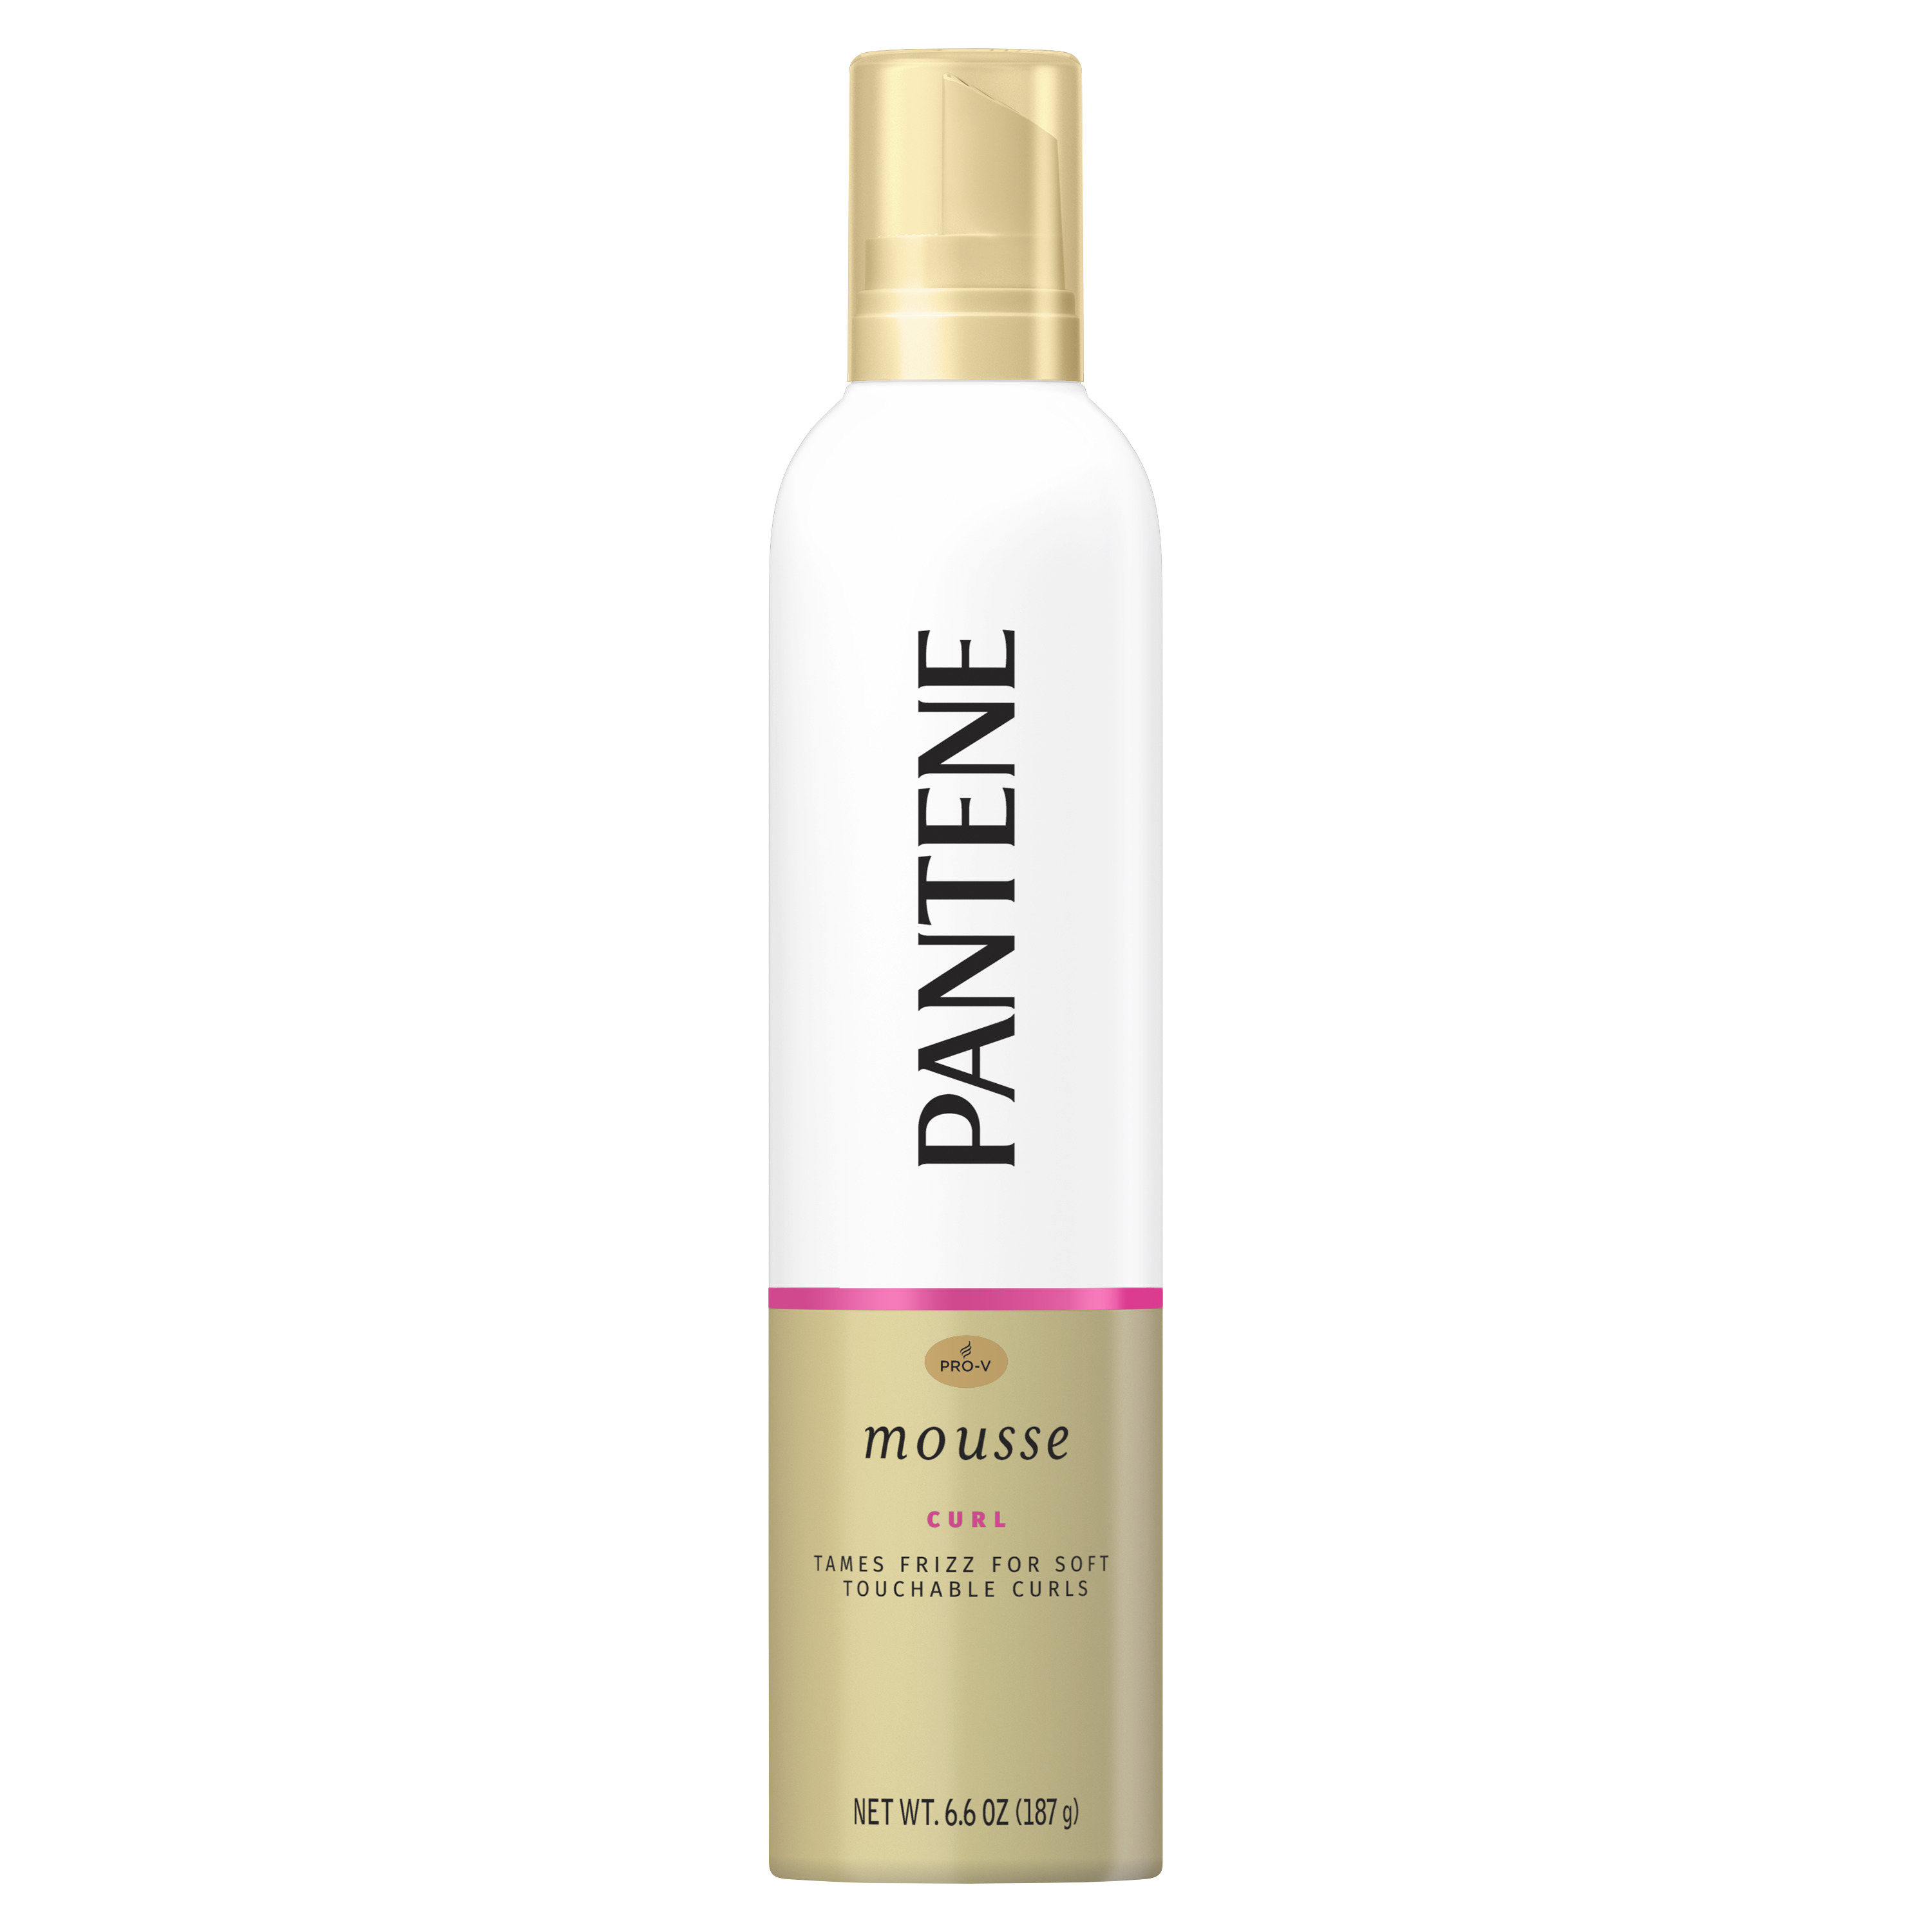 Pantene Pro-V Curl Mousse to Tame Frizz for Soft, Touchable Curls, 6.6 oz